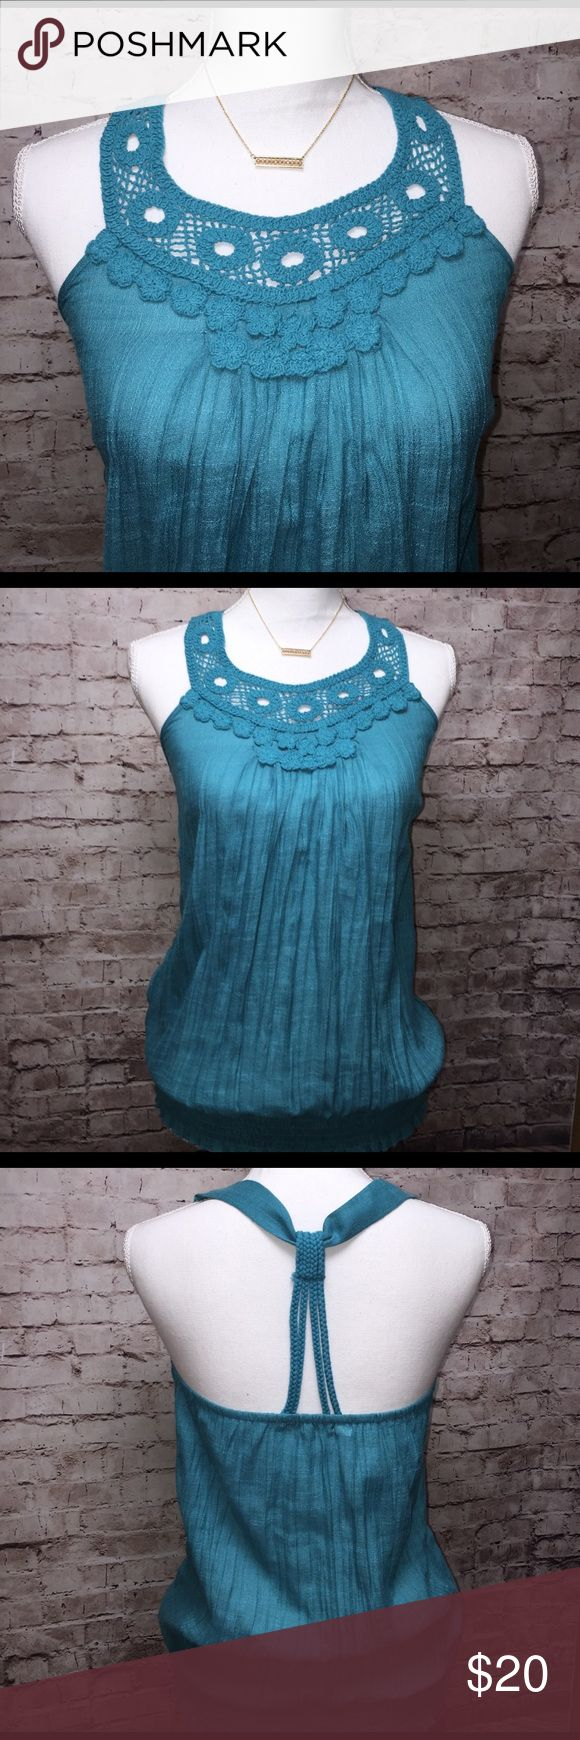 Mother's Day Sale 🌺 FREE SHIPPING 🌺 Turquoise Top by Maurices ... Spring hasn't Sprung but, it's coming soon! Embroidered neckline and rope knot down the spine. Beautiful top for the weekend outing! Size small. NWT Maurices Tops Tank Tops